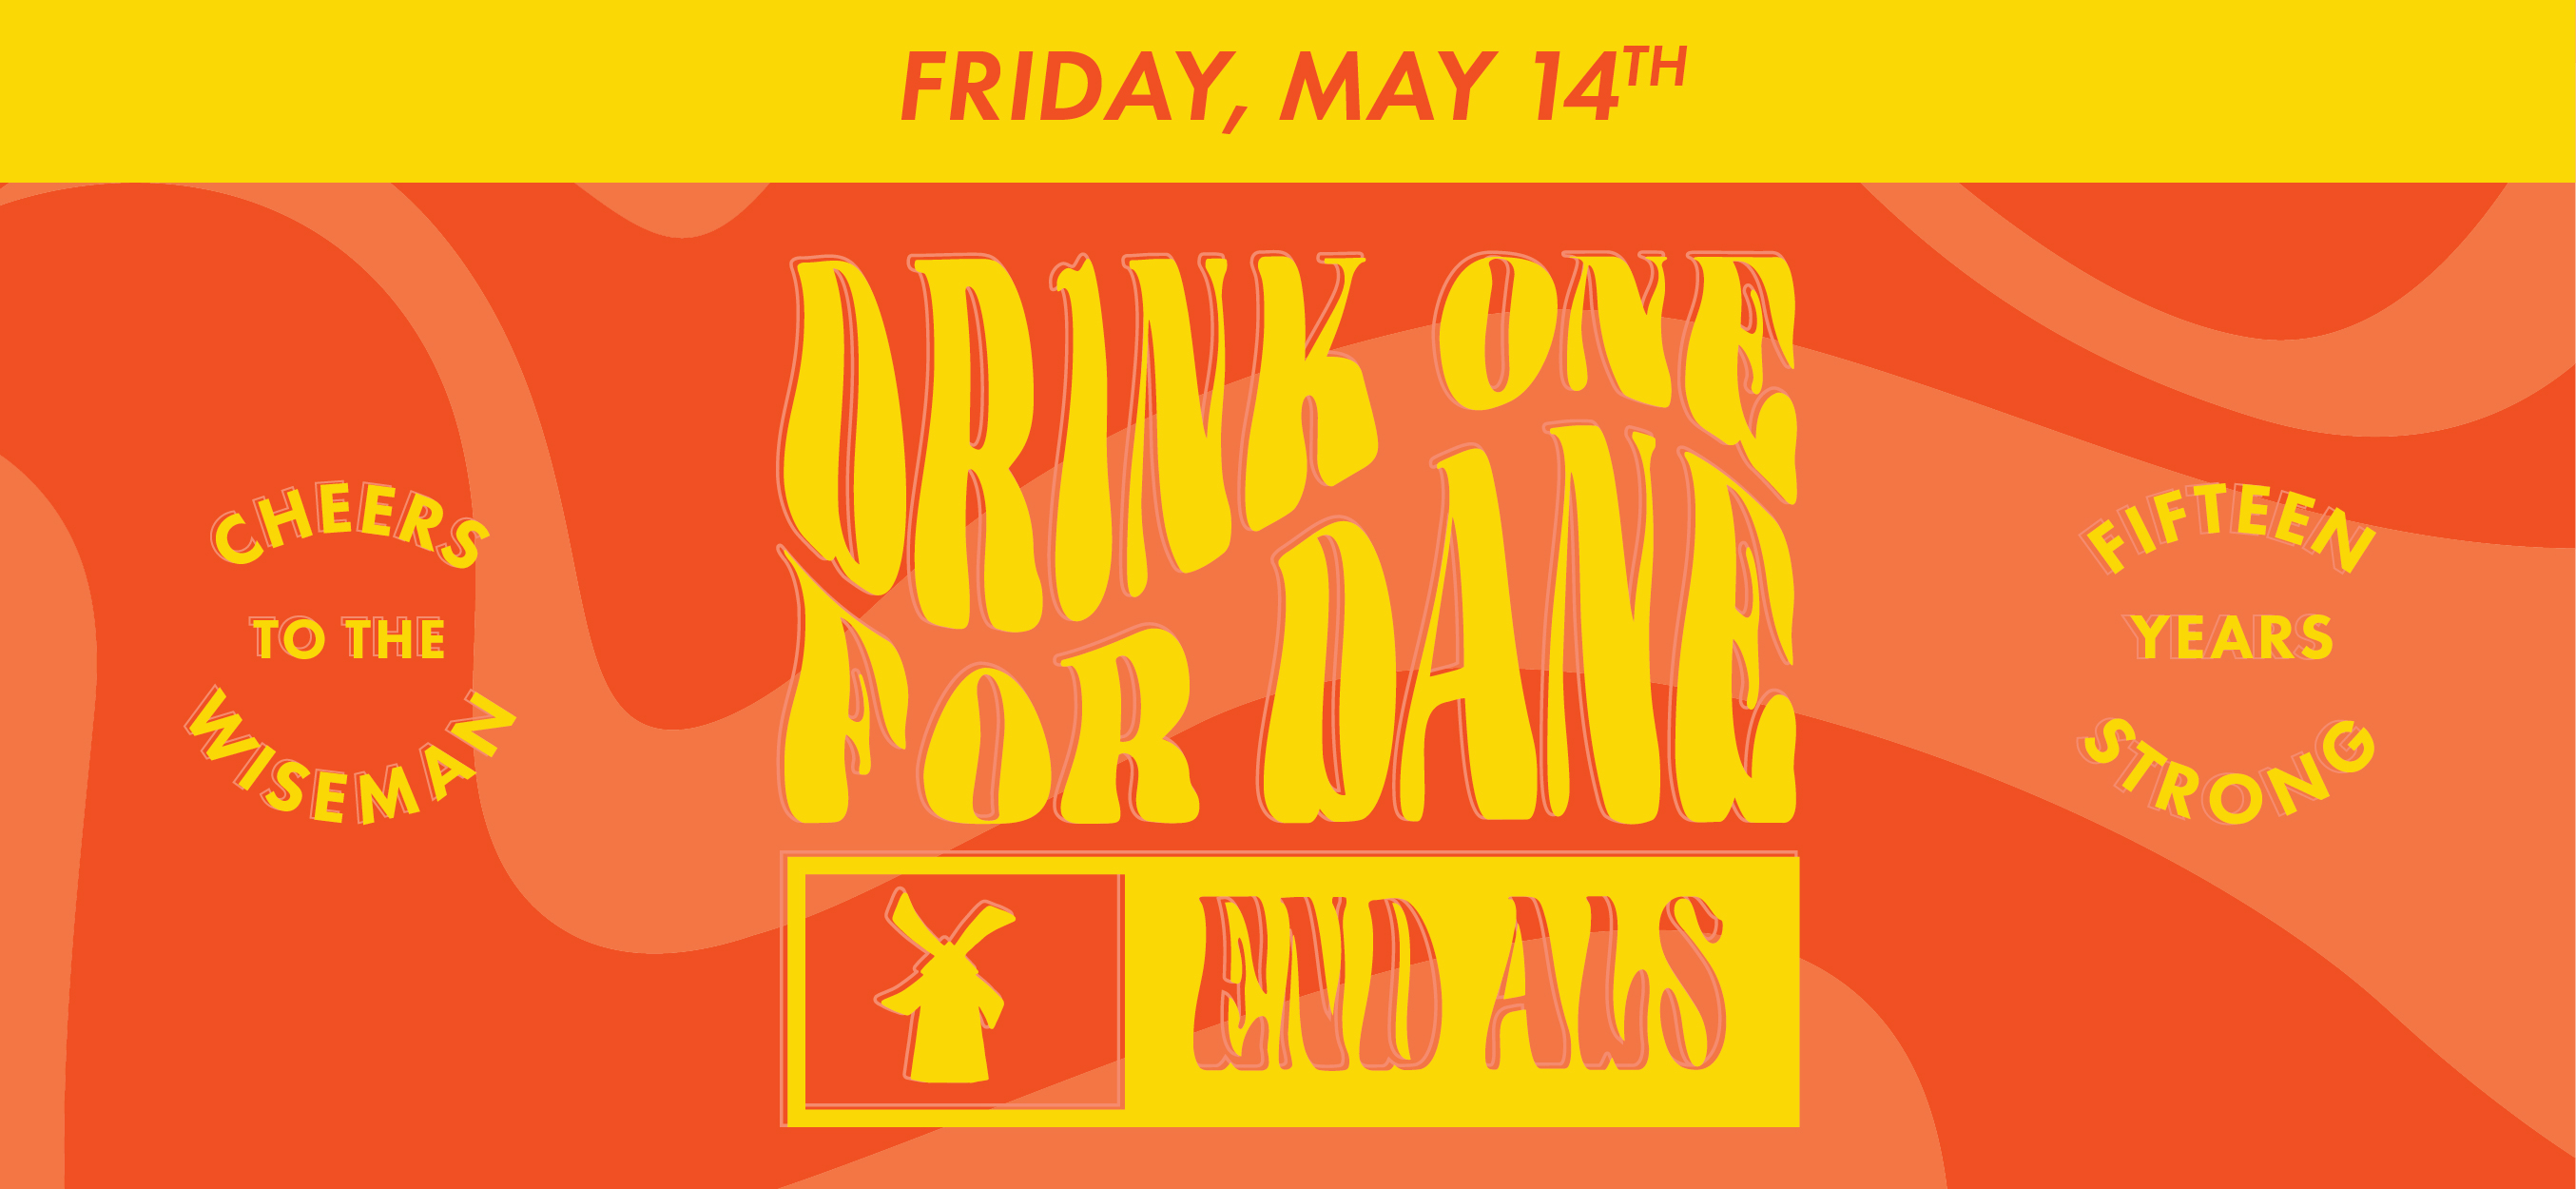 Friday, May 14th. Cheers to the Wiseman. Drink one for Dane. End ALS. Fifteen years strong.